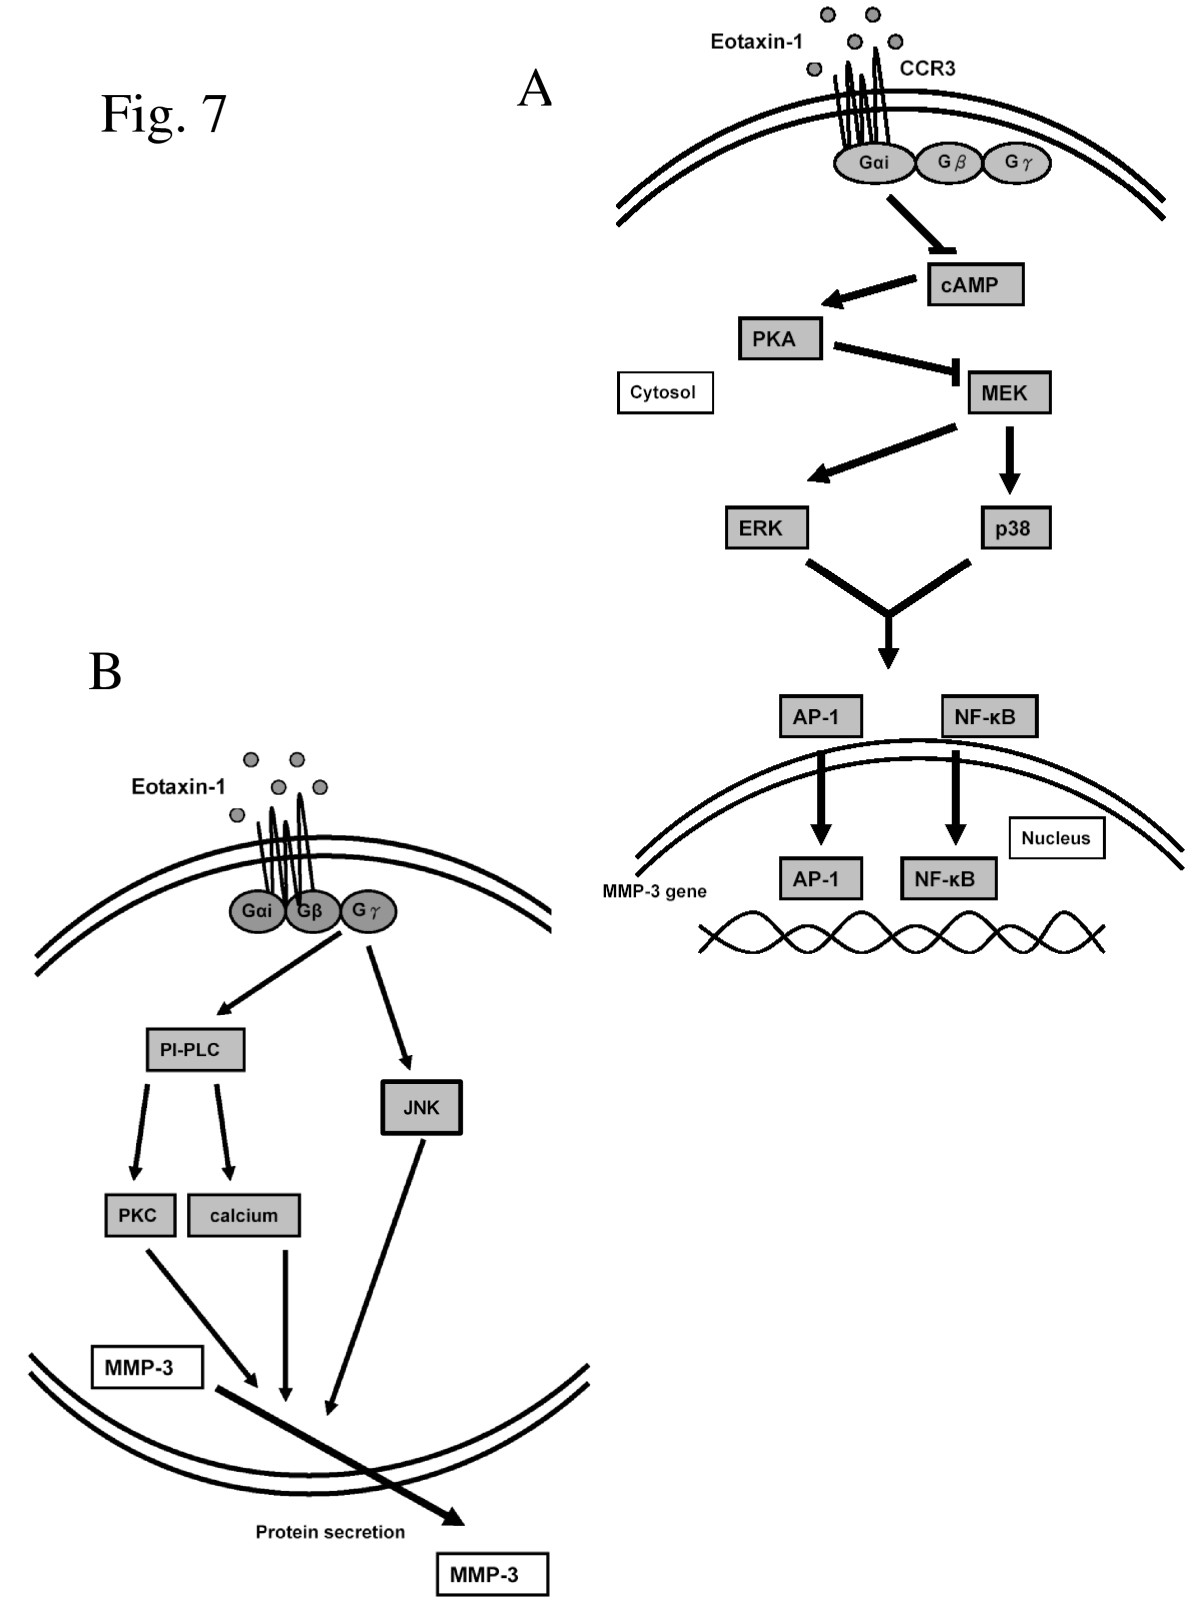 https://static-content.springer.com/image/art%3A10.1186%2F1423-0127-18-86/MediaObjects/12929_2011_Article_342_Fig7_HTML.jpg